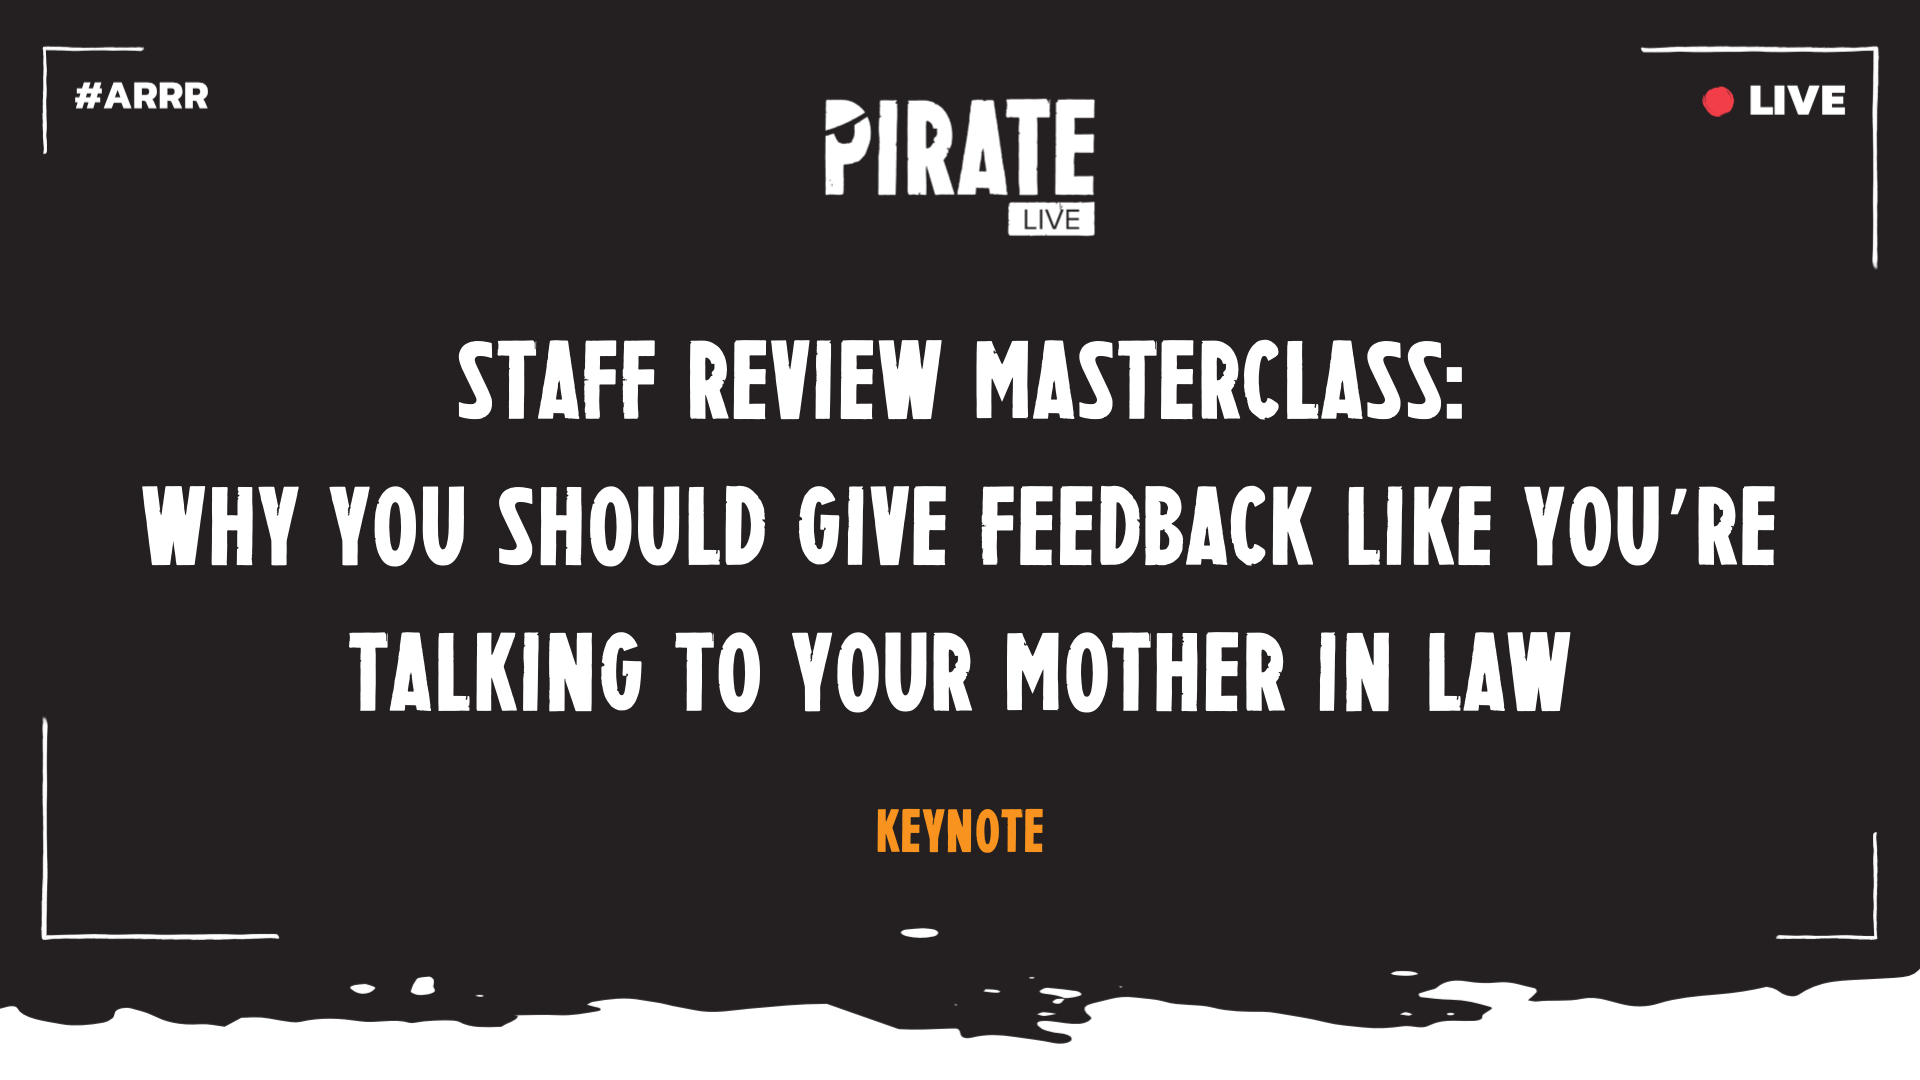 Why you should give feedback like you're talking to your mother